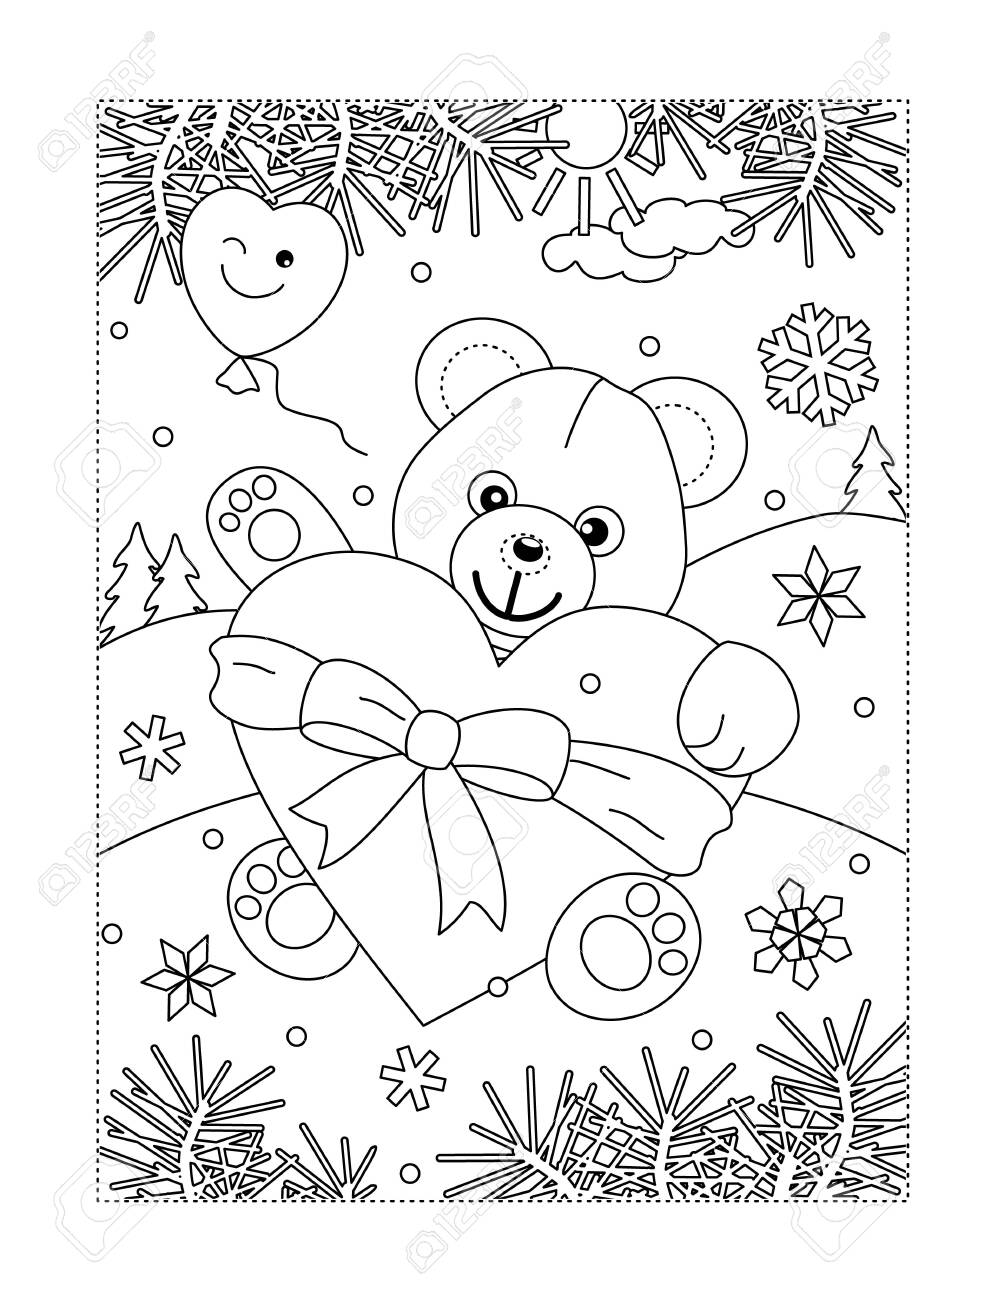 - Valentine's Day Coloring Page For Children Or Adults Lizenzfrei